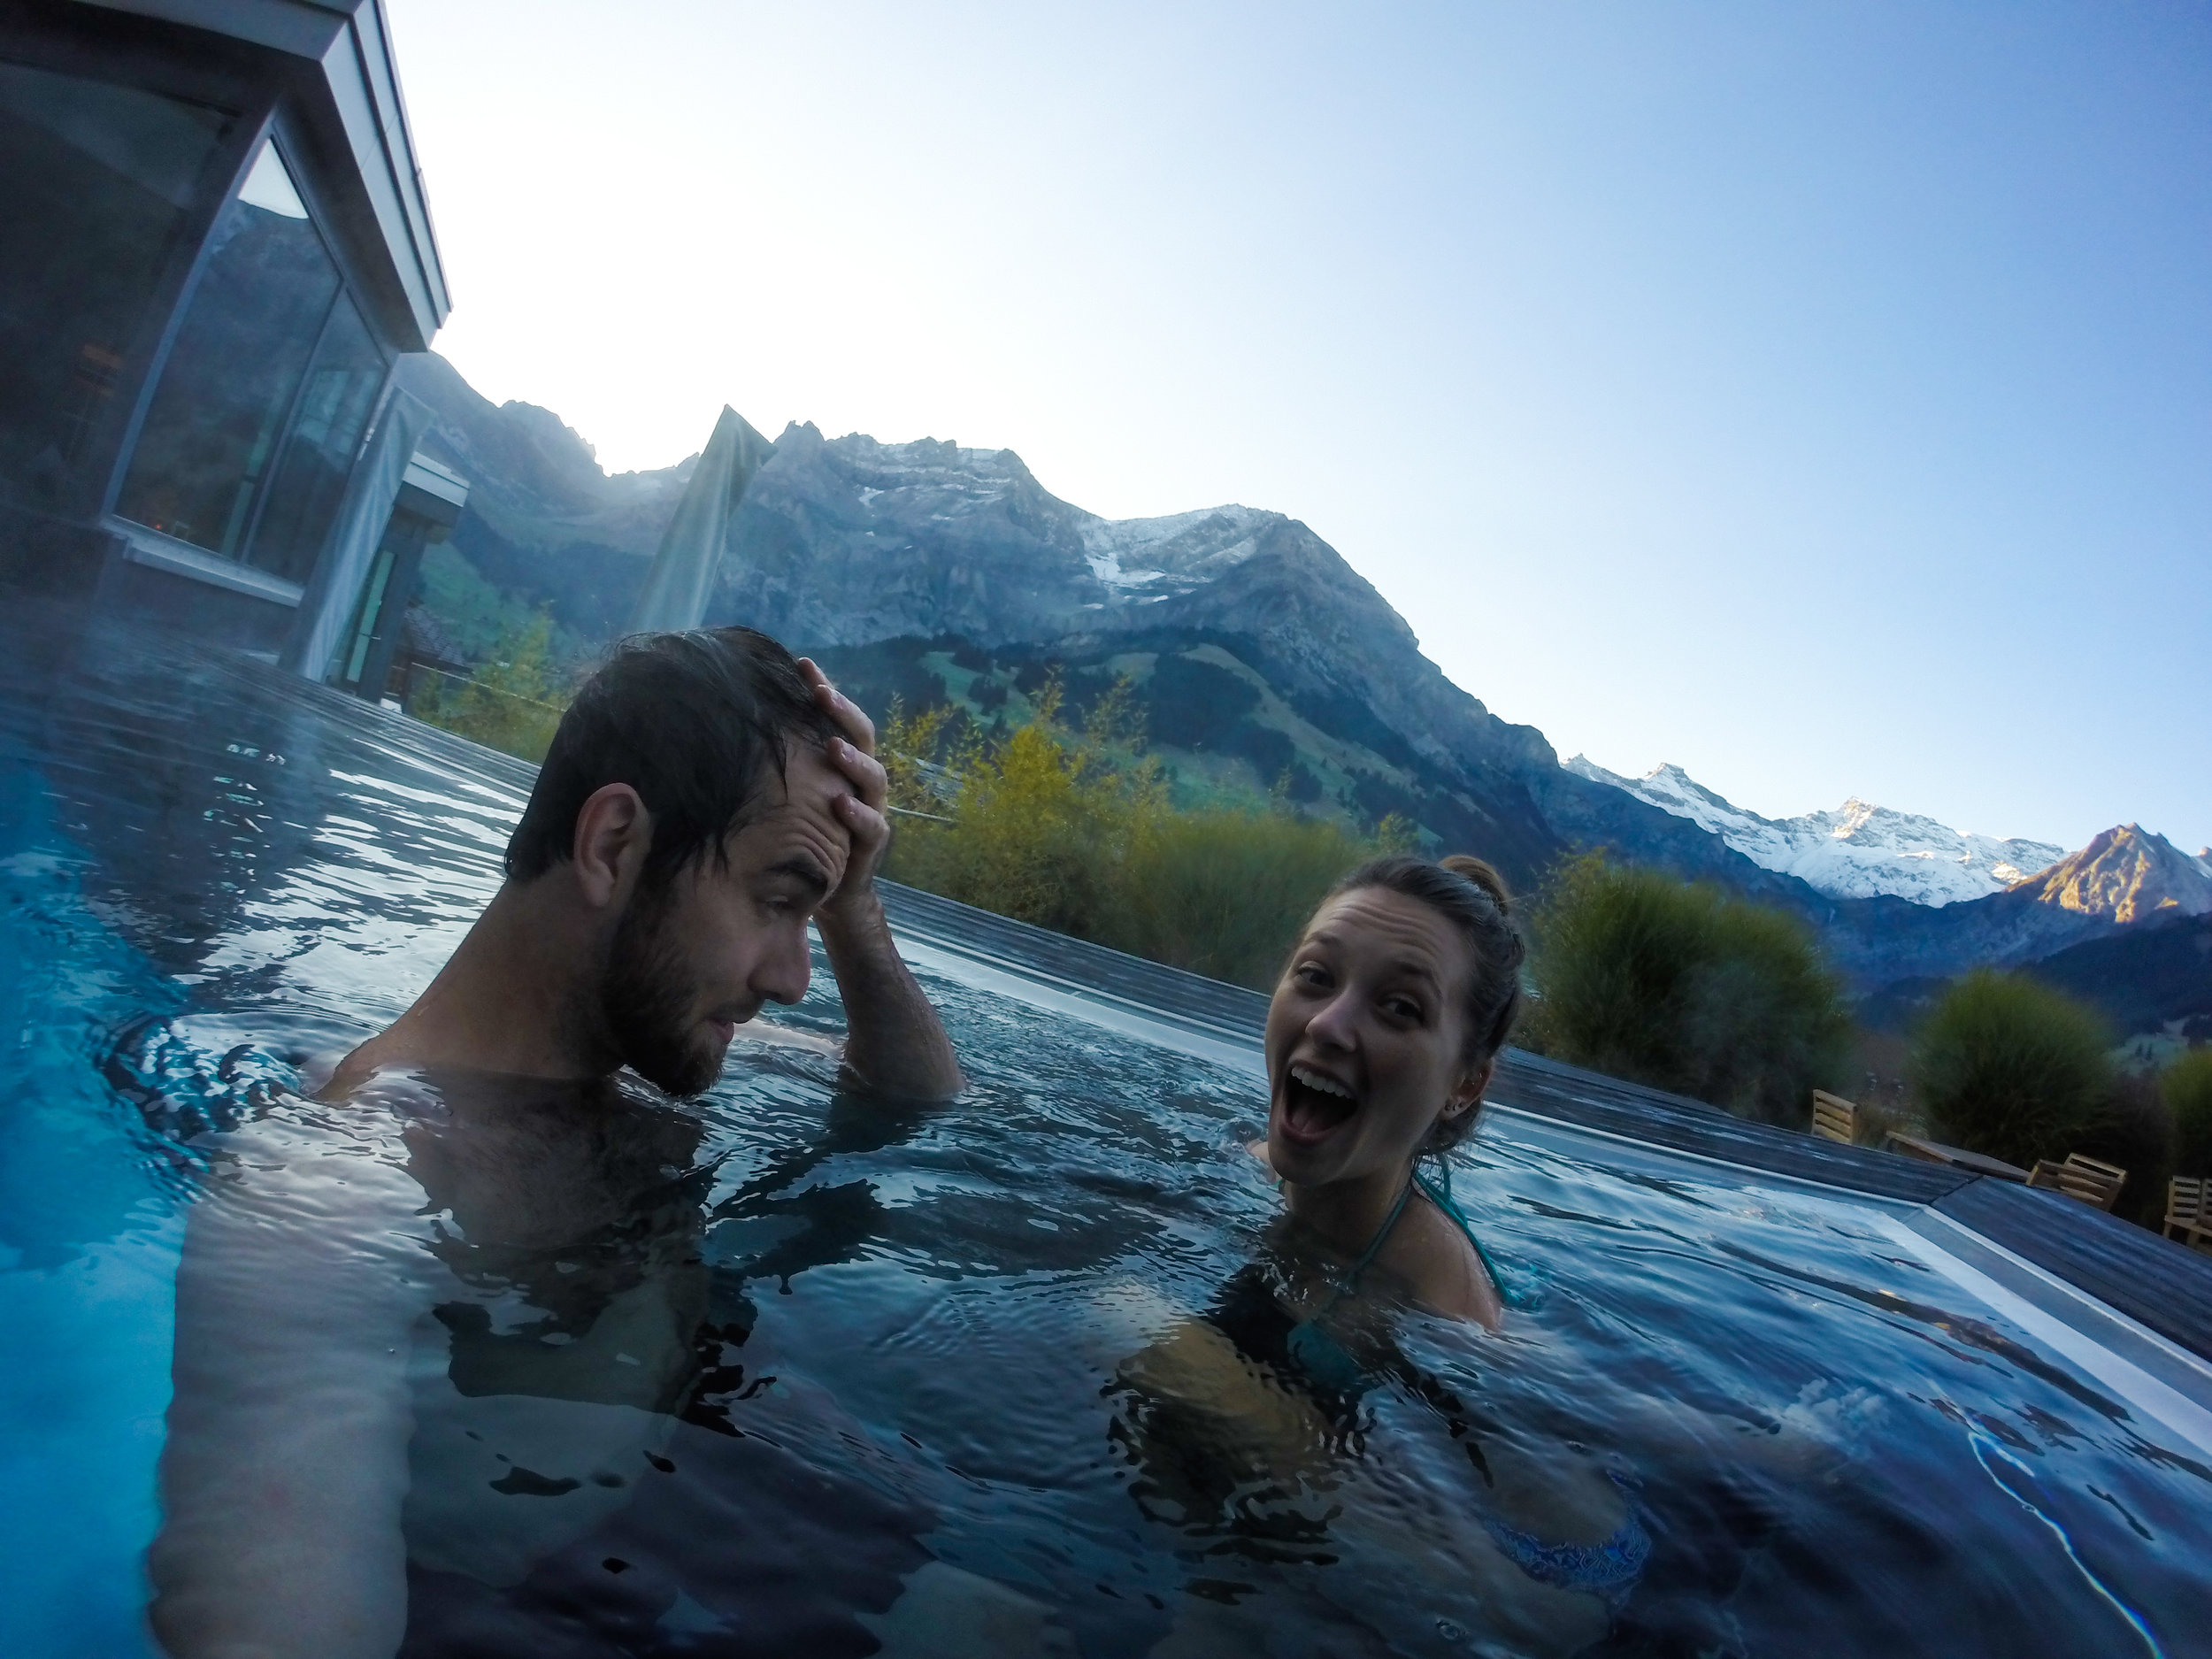 The view from The Cambrian's heated pool is like no other.